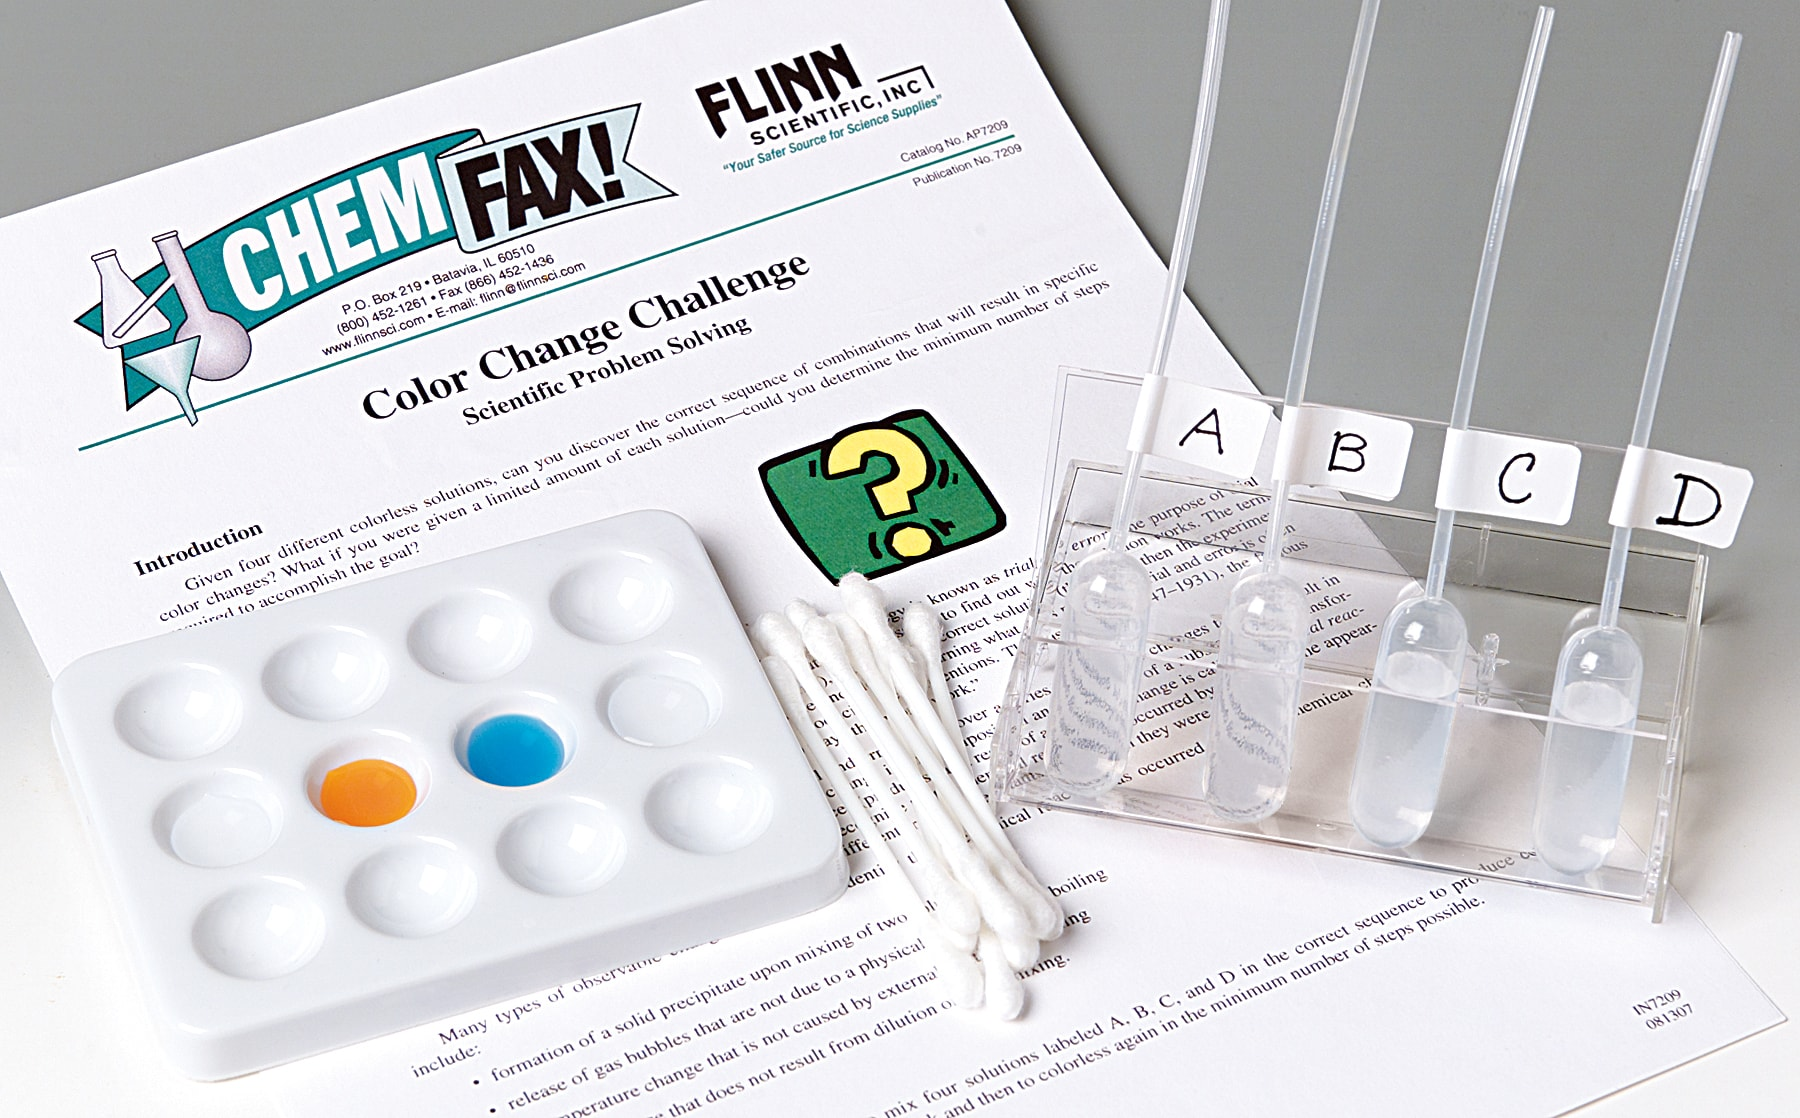 Color Change Challenge and Problem-Solving Guided-Inquiry Kit